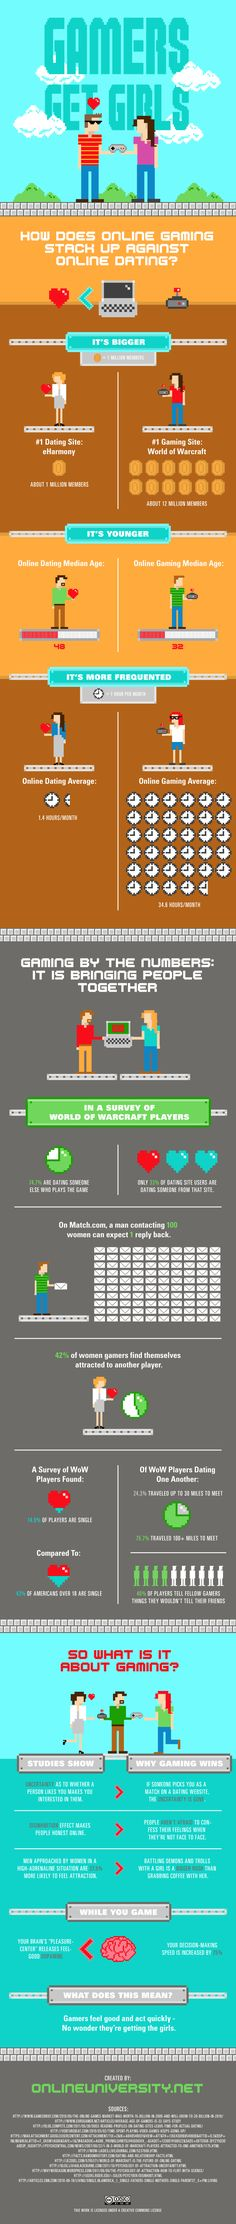 Gamers Get Girls: How Does Online Gaming Stack Up Against Online Dating?  by Online University